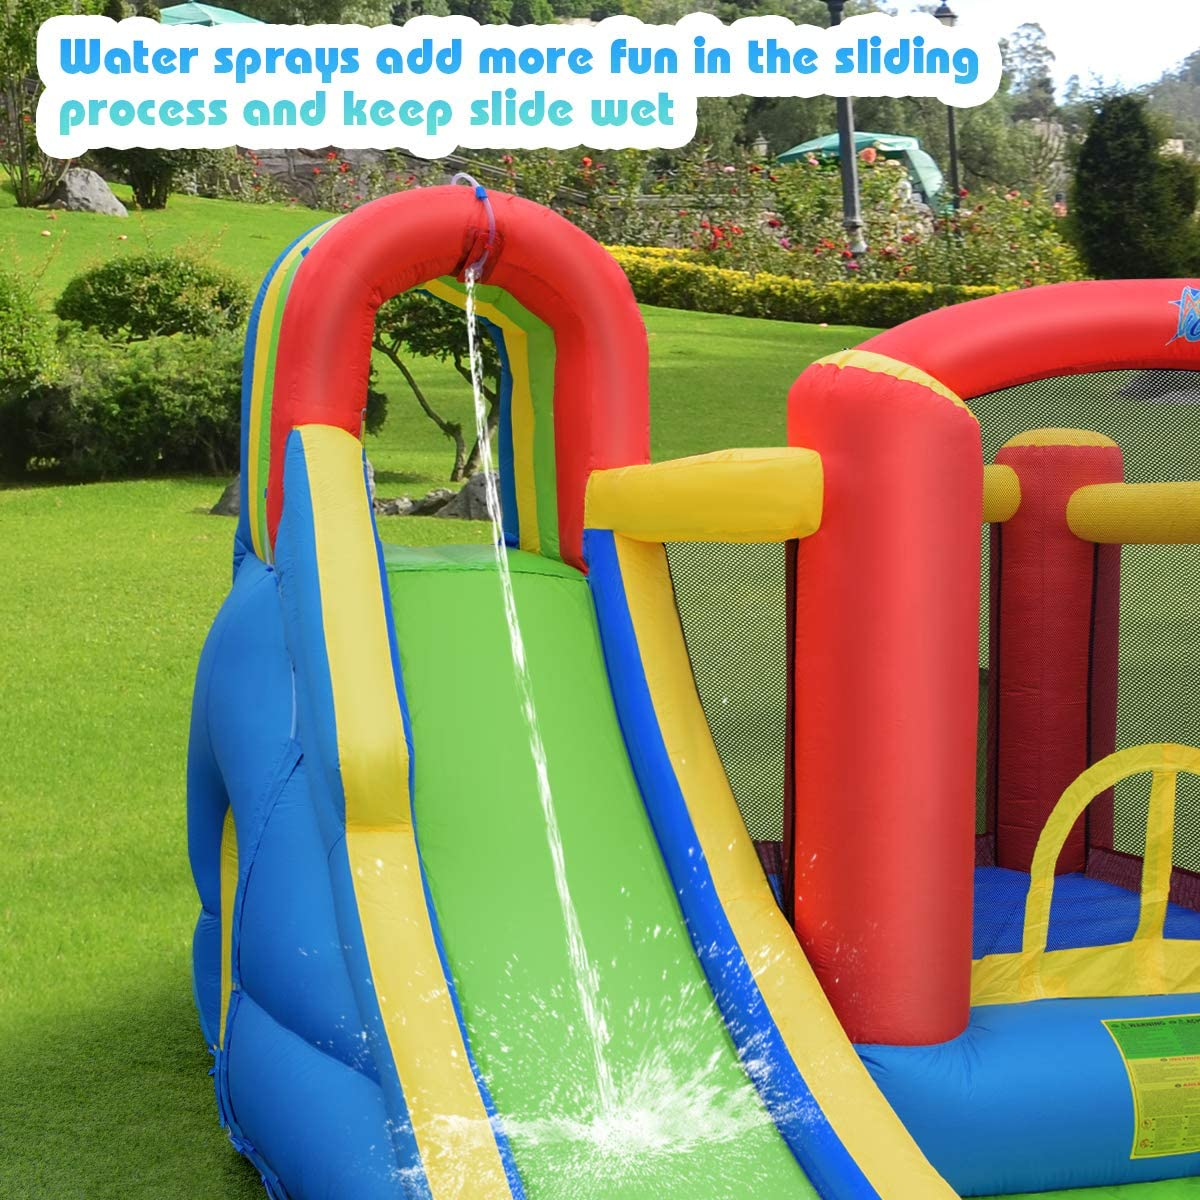 Splash Pool Including Carry Bag Repair Kit Stakes Hose Ocean Balls Without Blower 9 in 1 Jump Bounce House w// Long Slide Climbing Wall Tunnel BOUNTECH Inflatable Water Slide Water Cannon